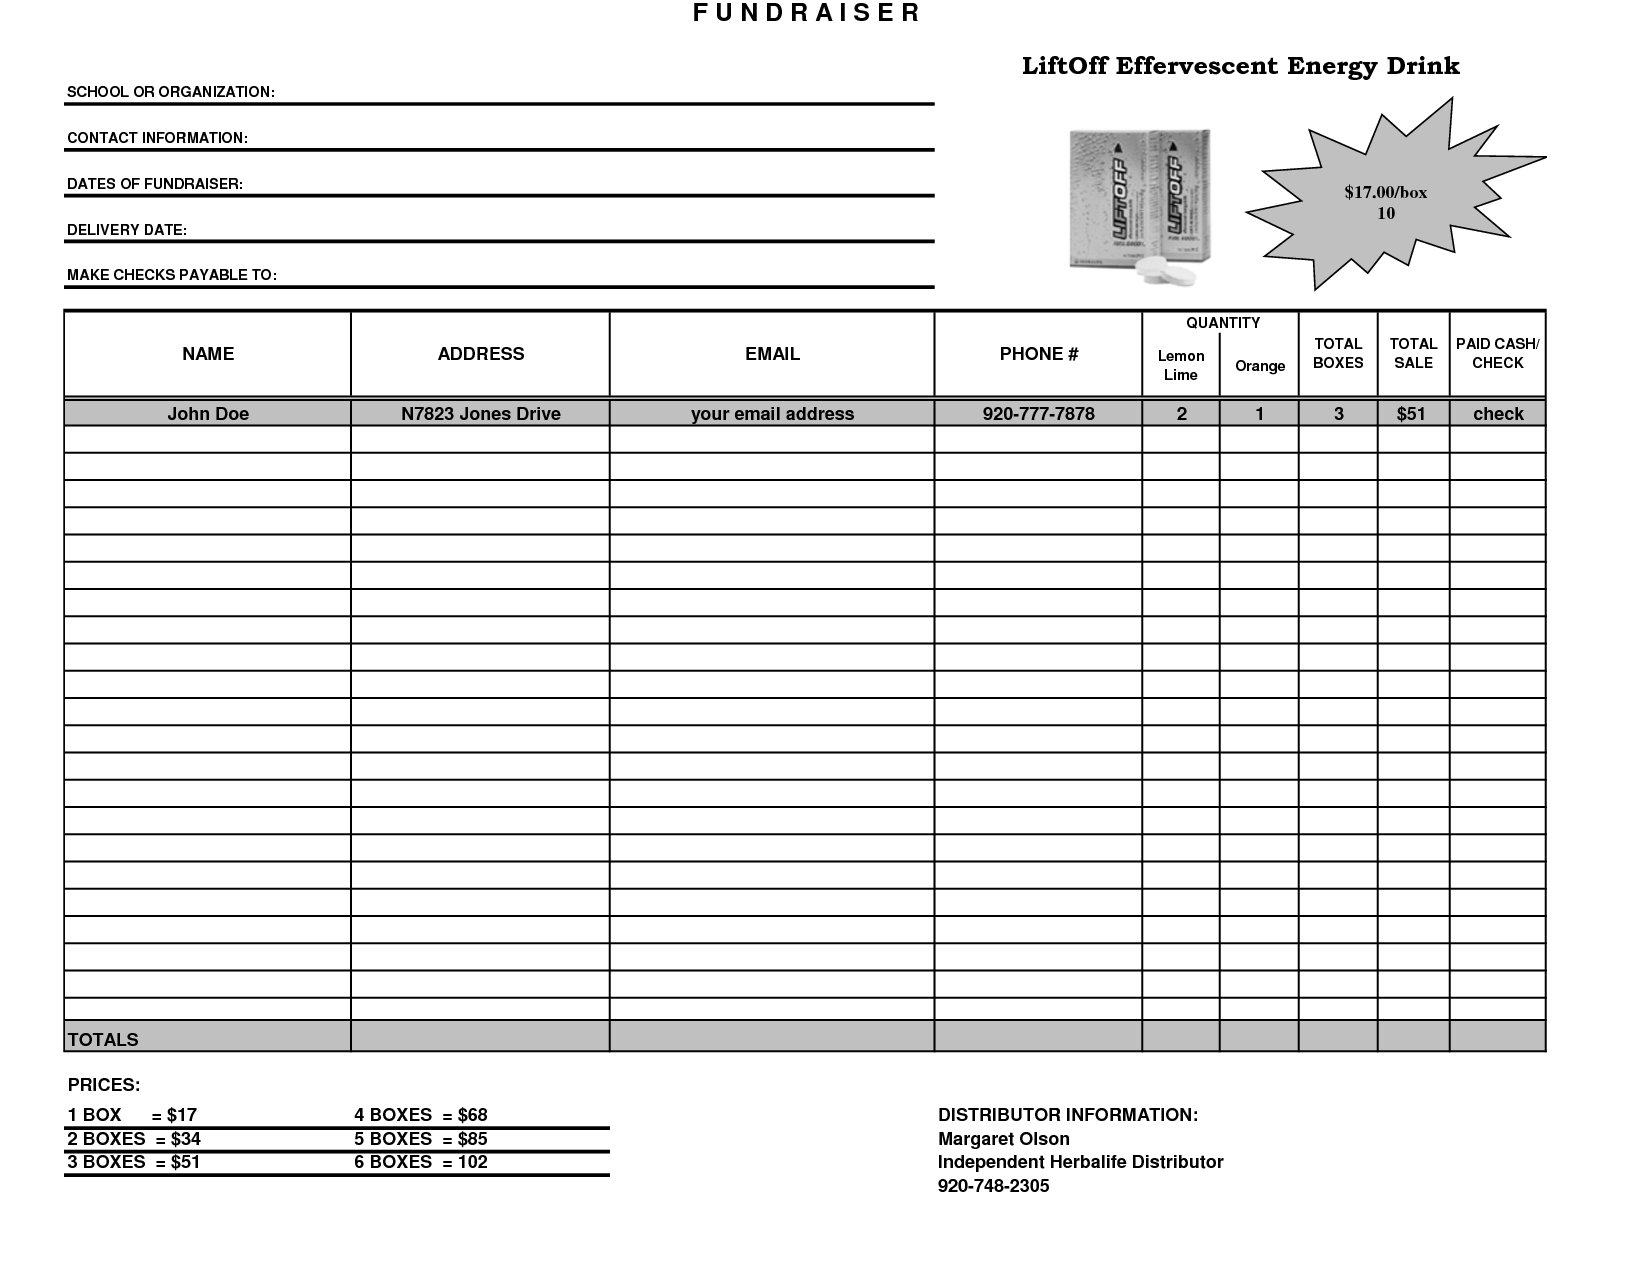 Fundraiser Template Excel Fundraiser Order Form Template